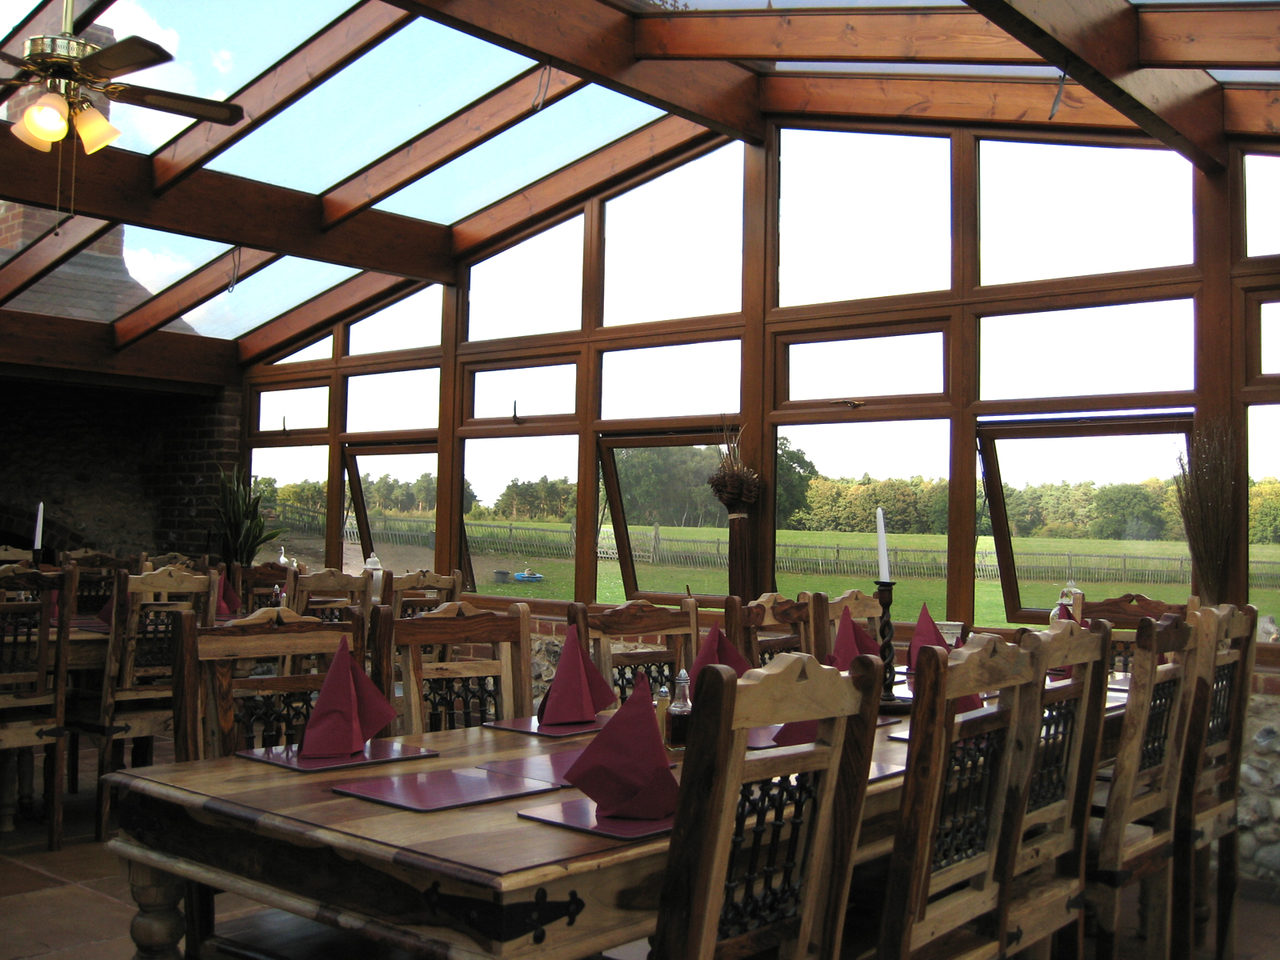 Conservatory at The Brick Kilns pub